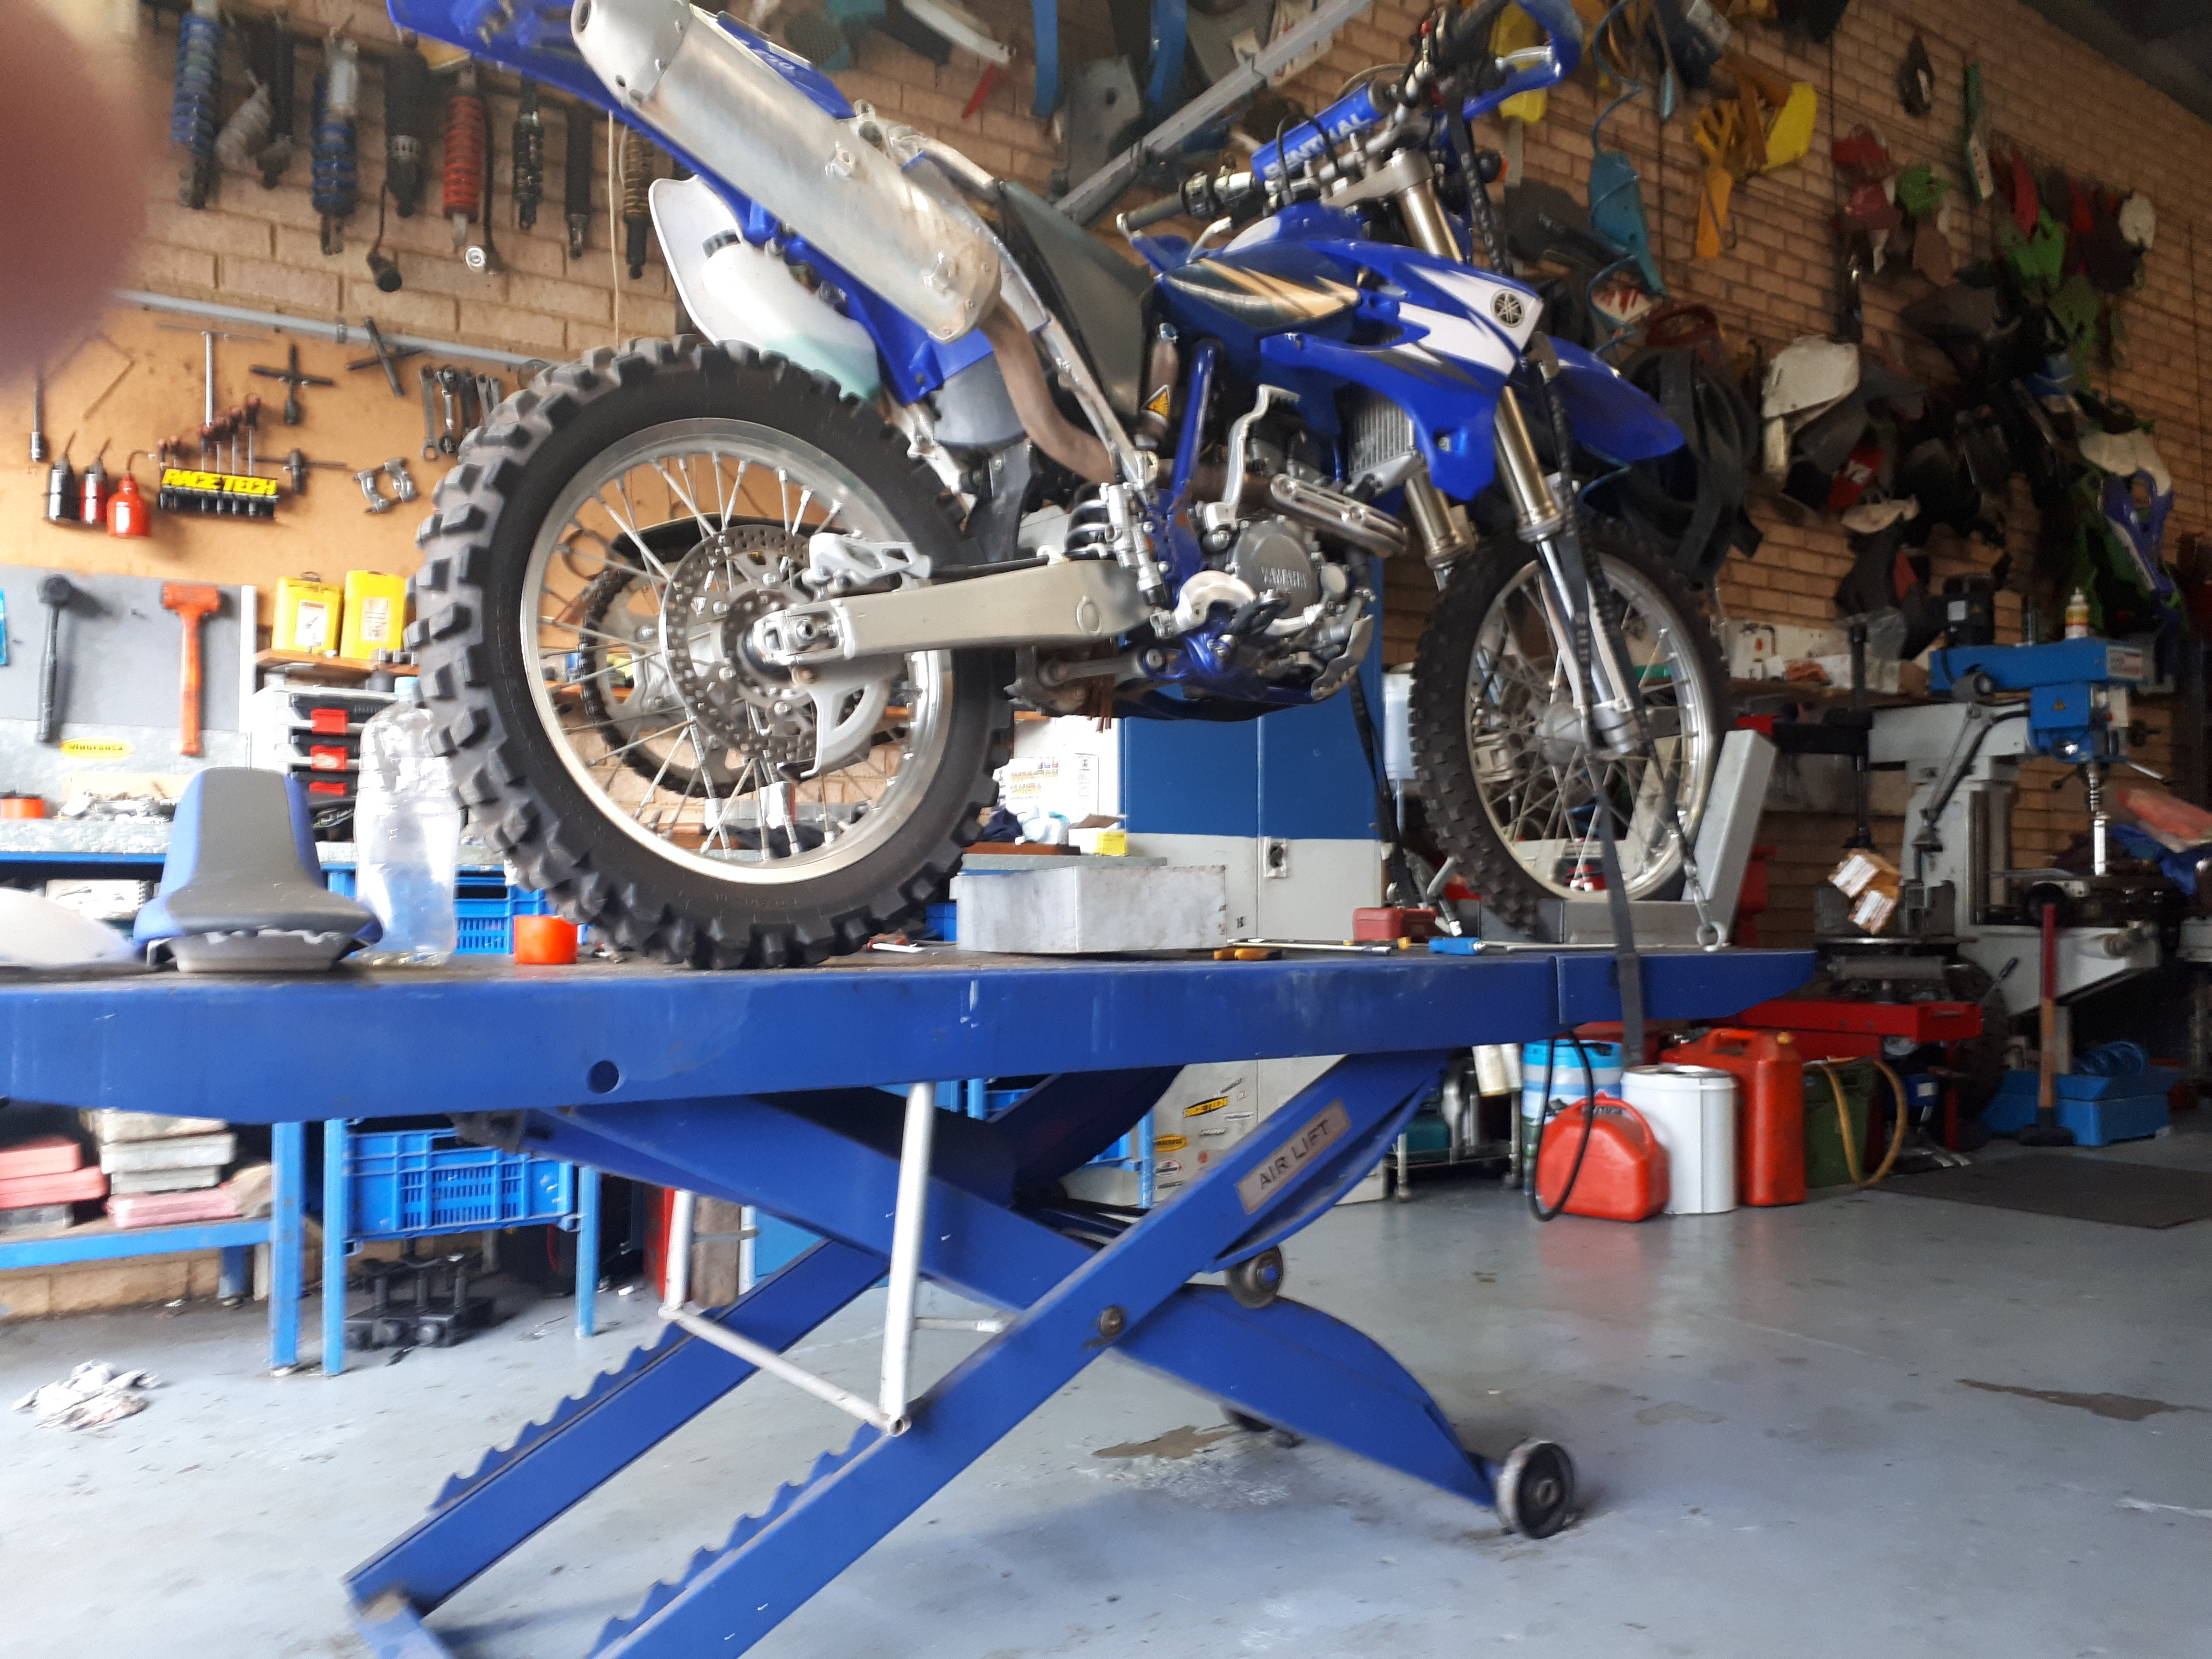 MOTORCYCLE SALES, REPAIR, SERVICING & SPARES BUSINESS FOR SALE IN Maddington WA